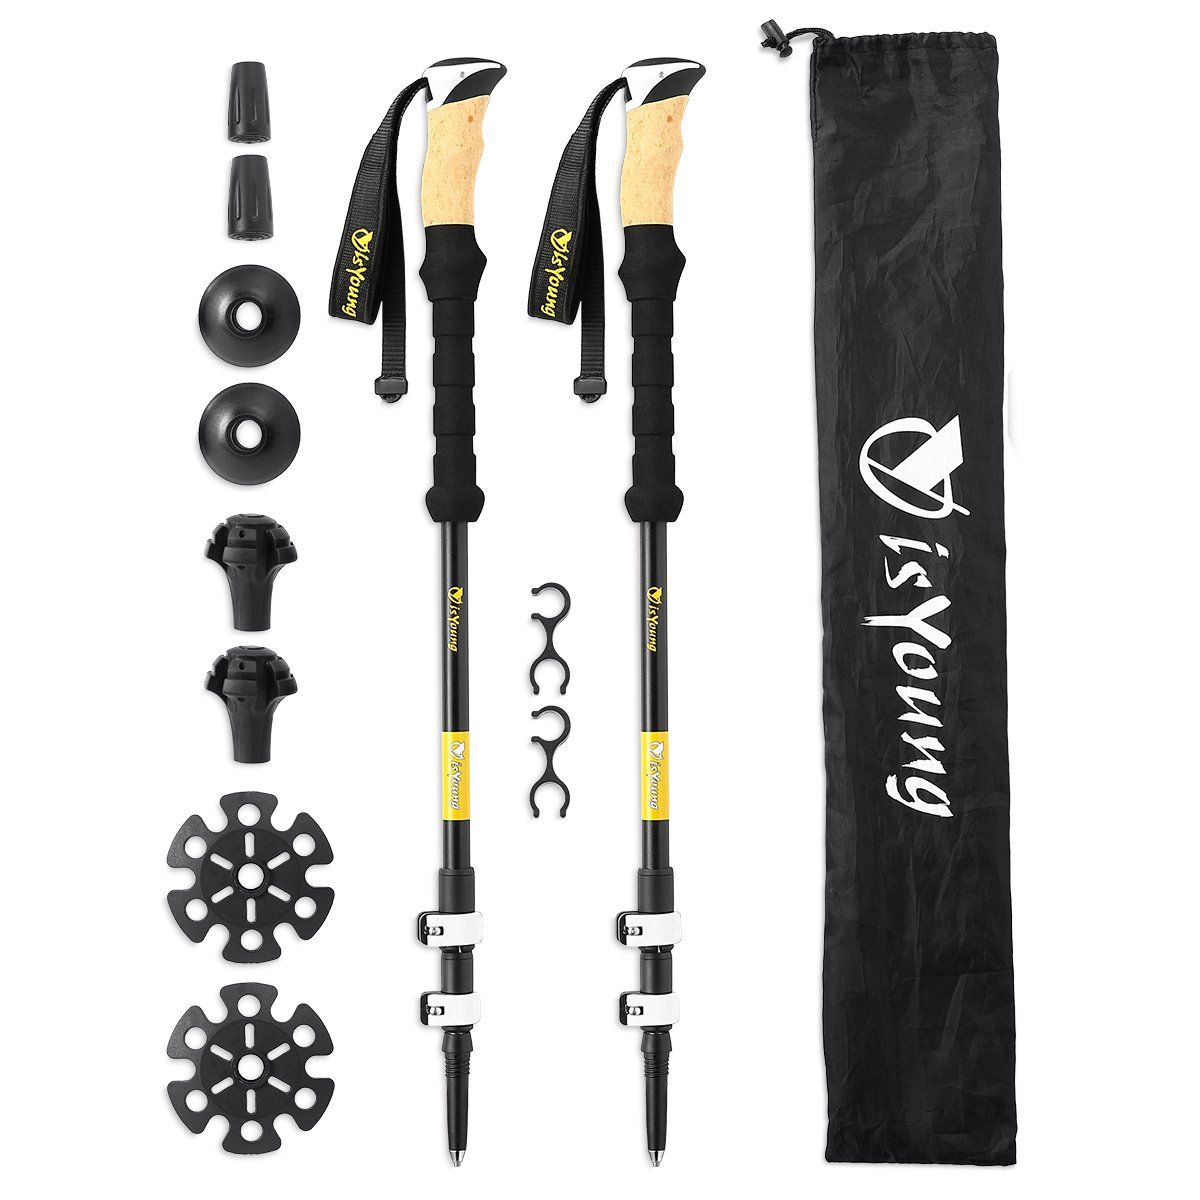 isYoung Hiking Trekking Poles 2-Pack Lightweight Aluminum Alpenstocks Mountaineering Anti Shock Trekking Poles with Accessories and Carrying Bag